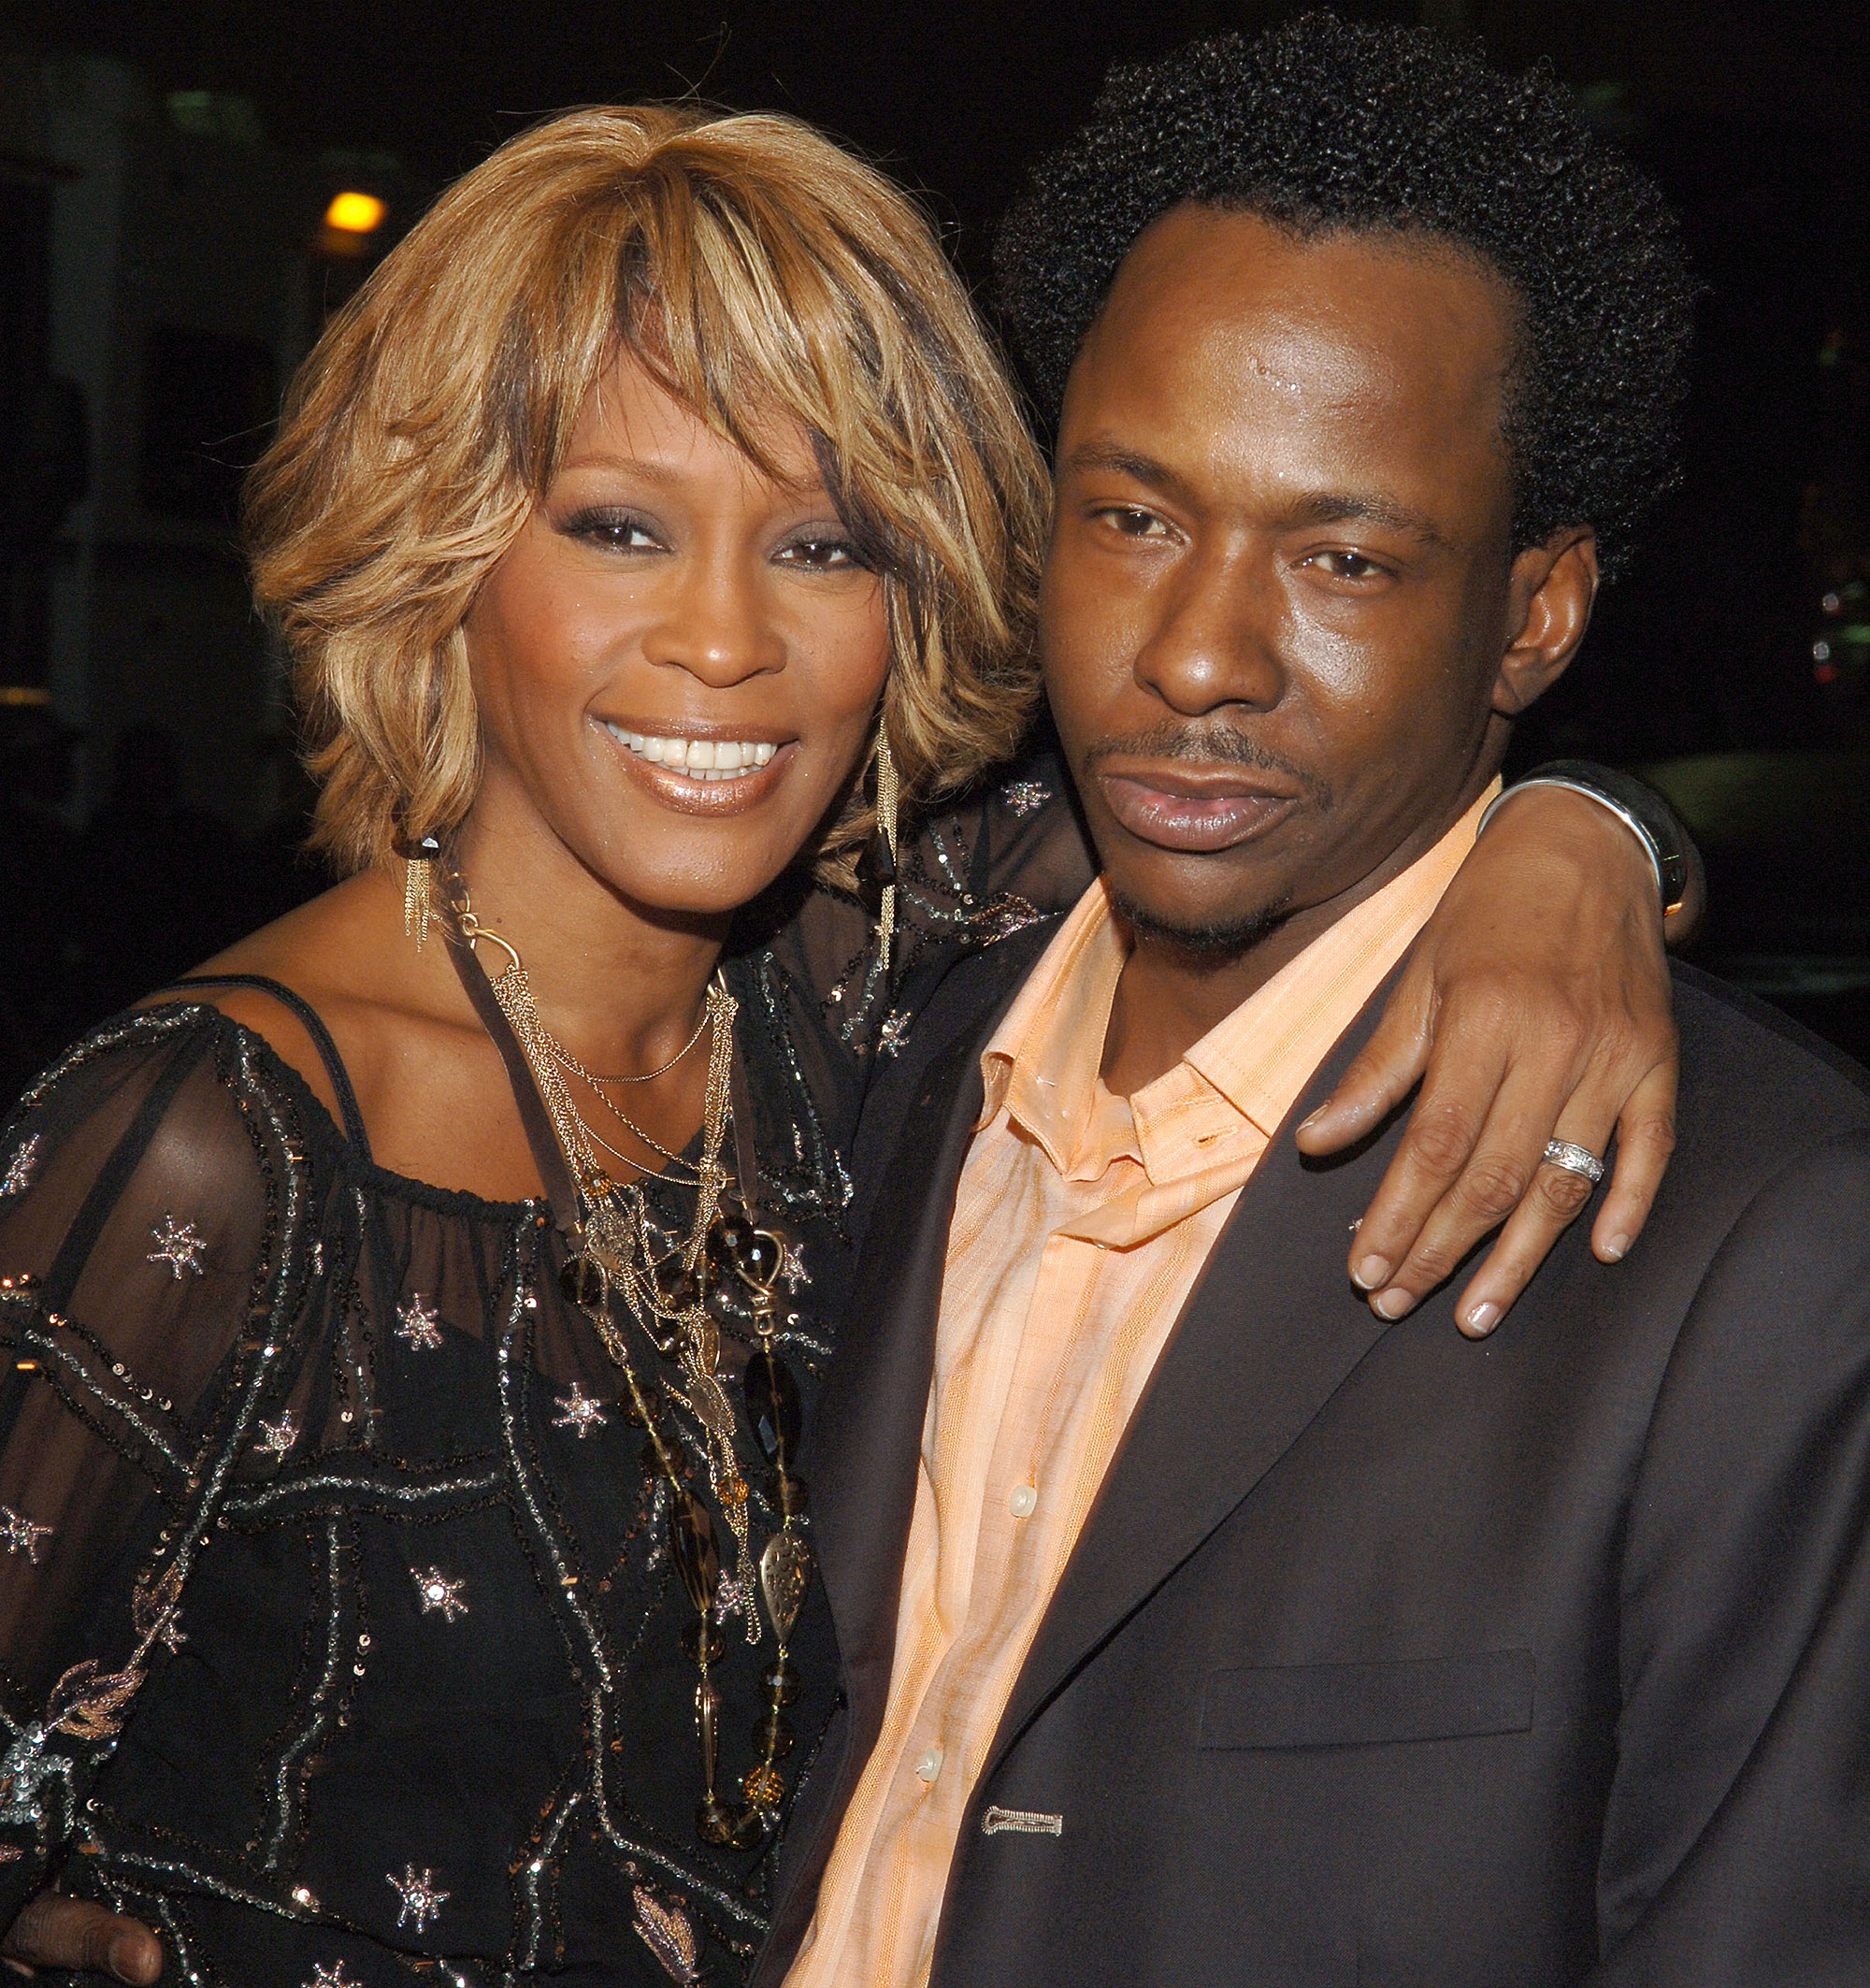 Whitney Houston and Bobby Brown posing for a picture together